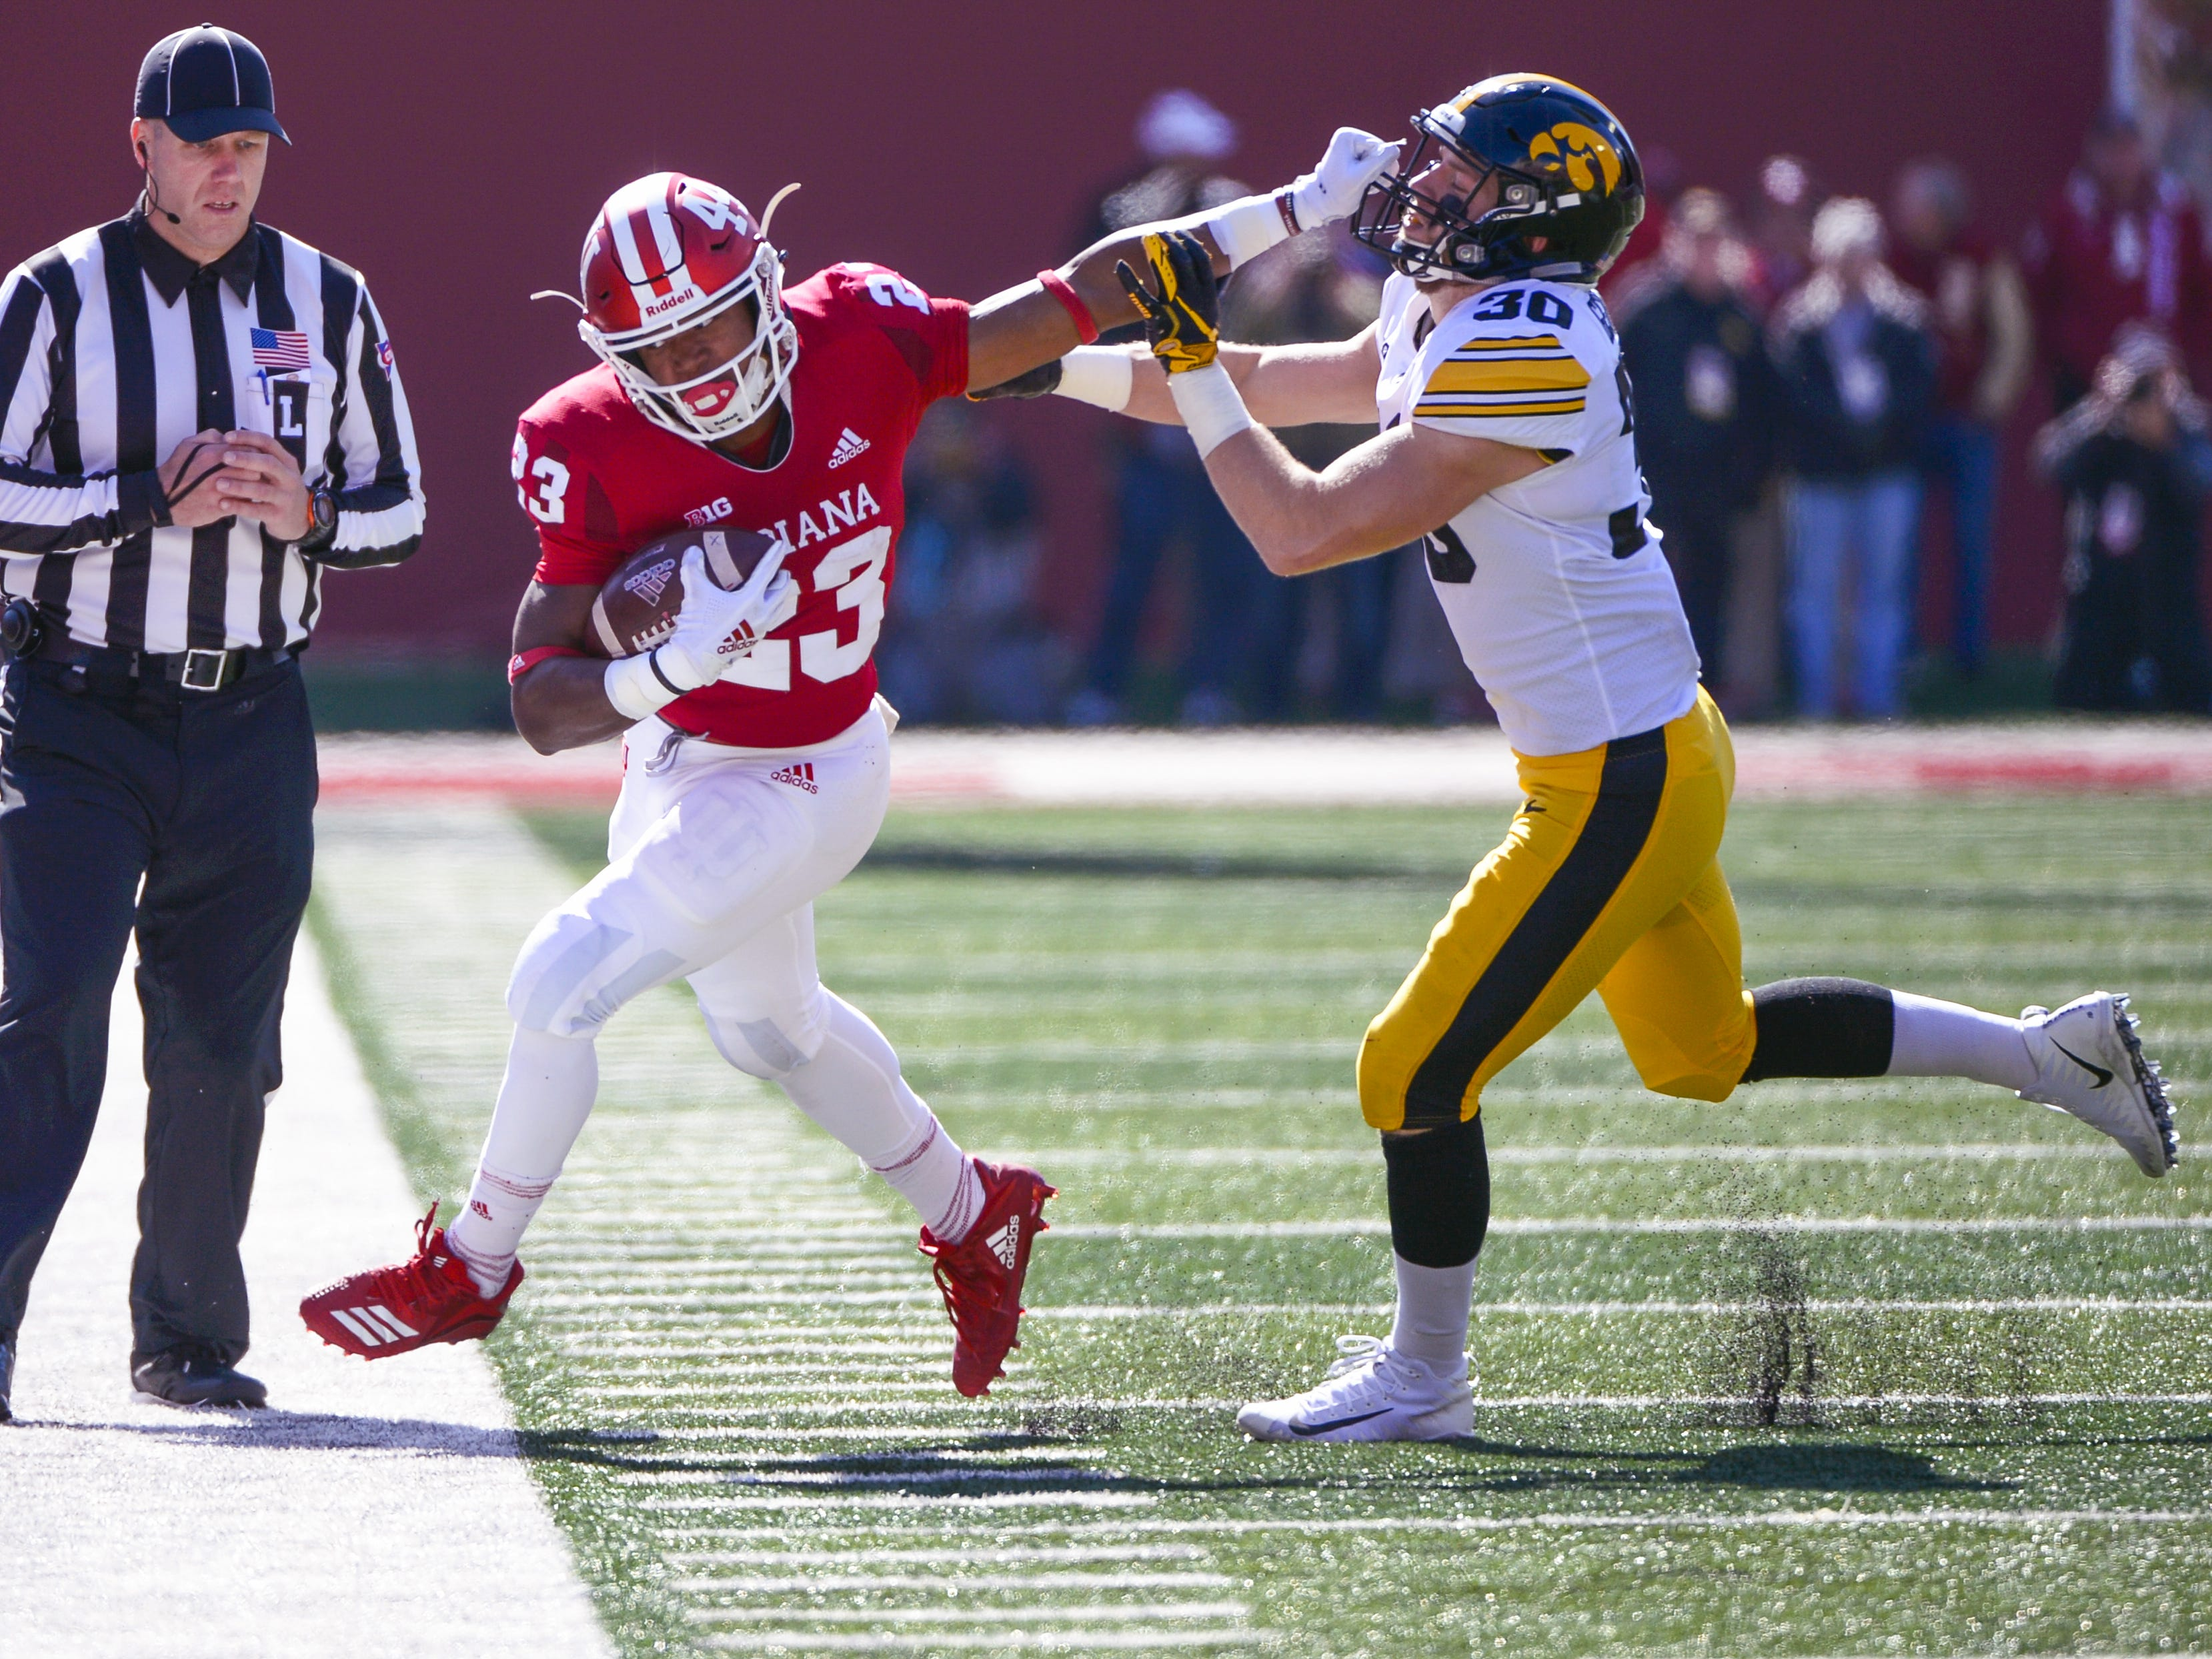 Indiana Hoosiers running back Ronnie Walker Jr. (23) stiff arms a defender during the game against Iowa at Memorial Stadium in Bloomington, Ind., on Saturday, Oct. 13, 2018.